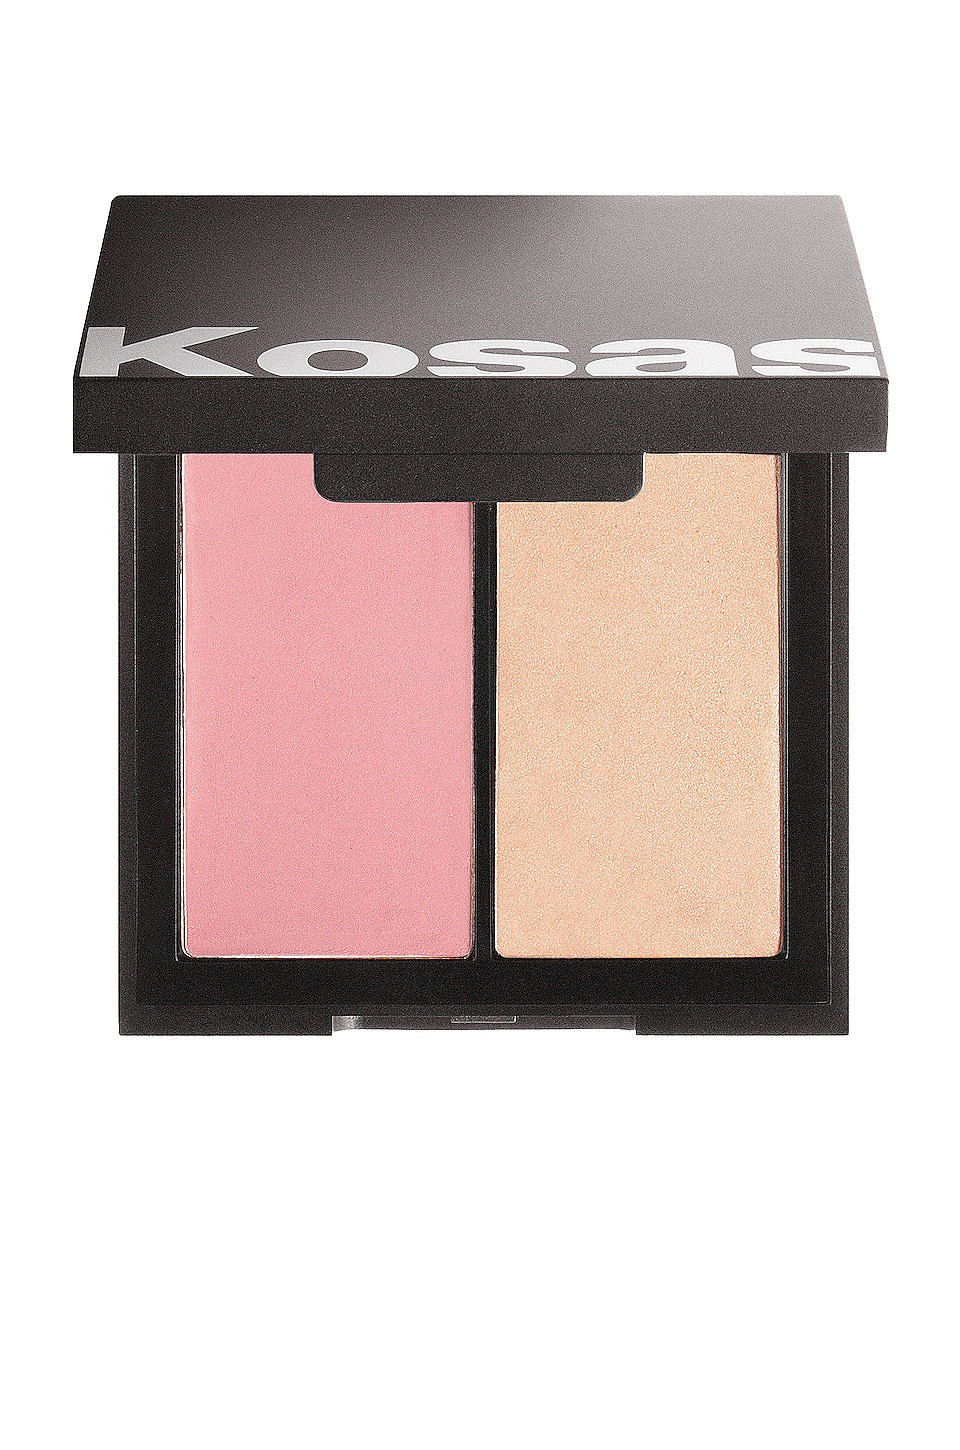 Kosas Color & Light Creme in 8th Muse